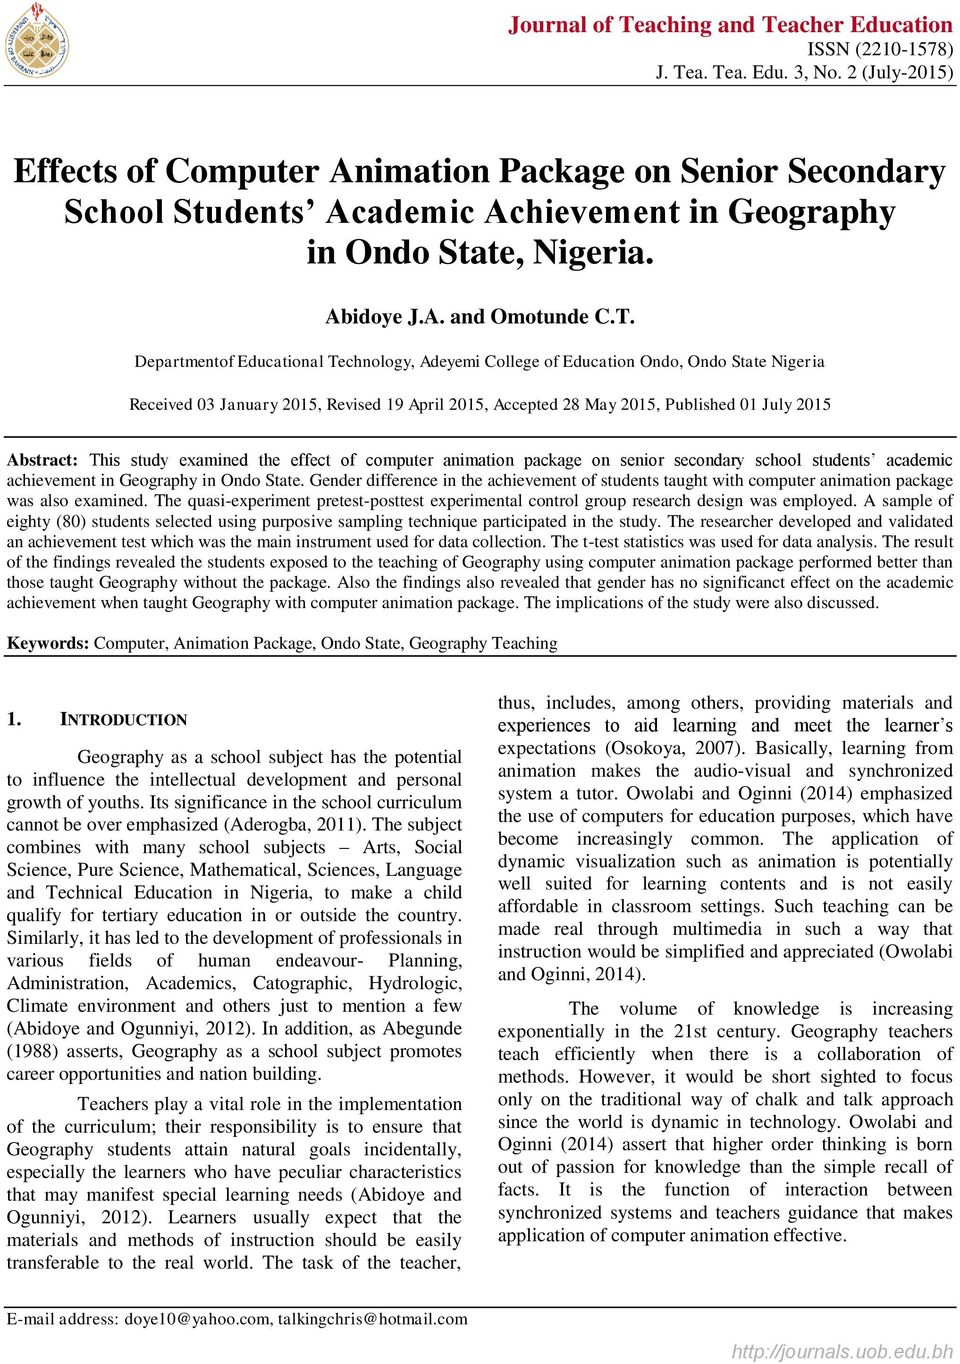 Departmentof Educational Technology, Adeyemi College of Education Ondo, Ondo State Nigeria Received 03 January 2015, Revised 19 April 2015, Accepted 28 May 2015, Published 01 July 2015 Abstract: This